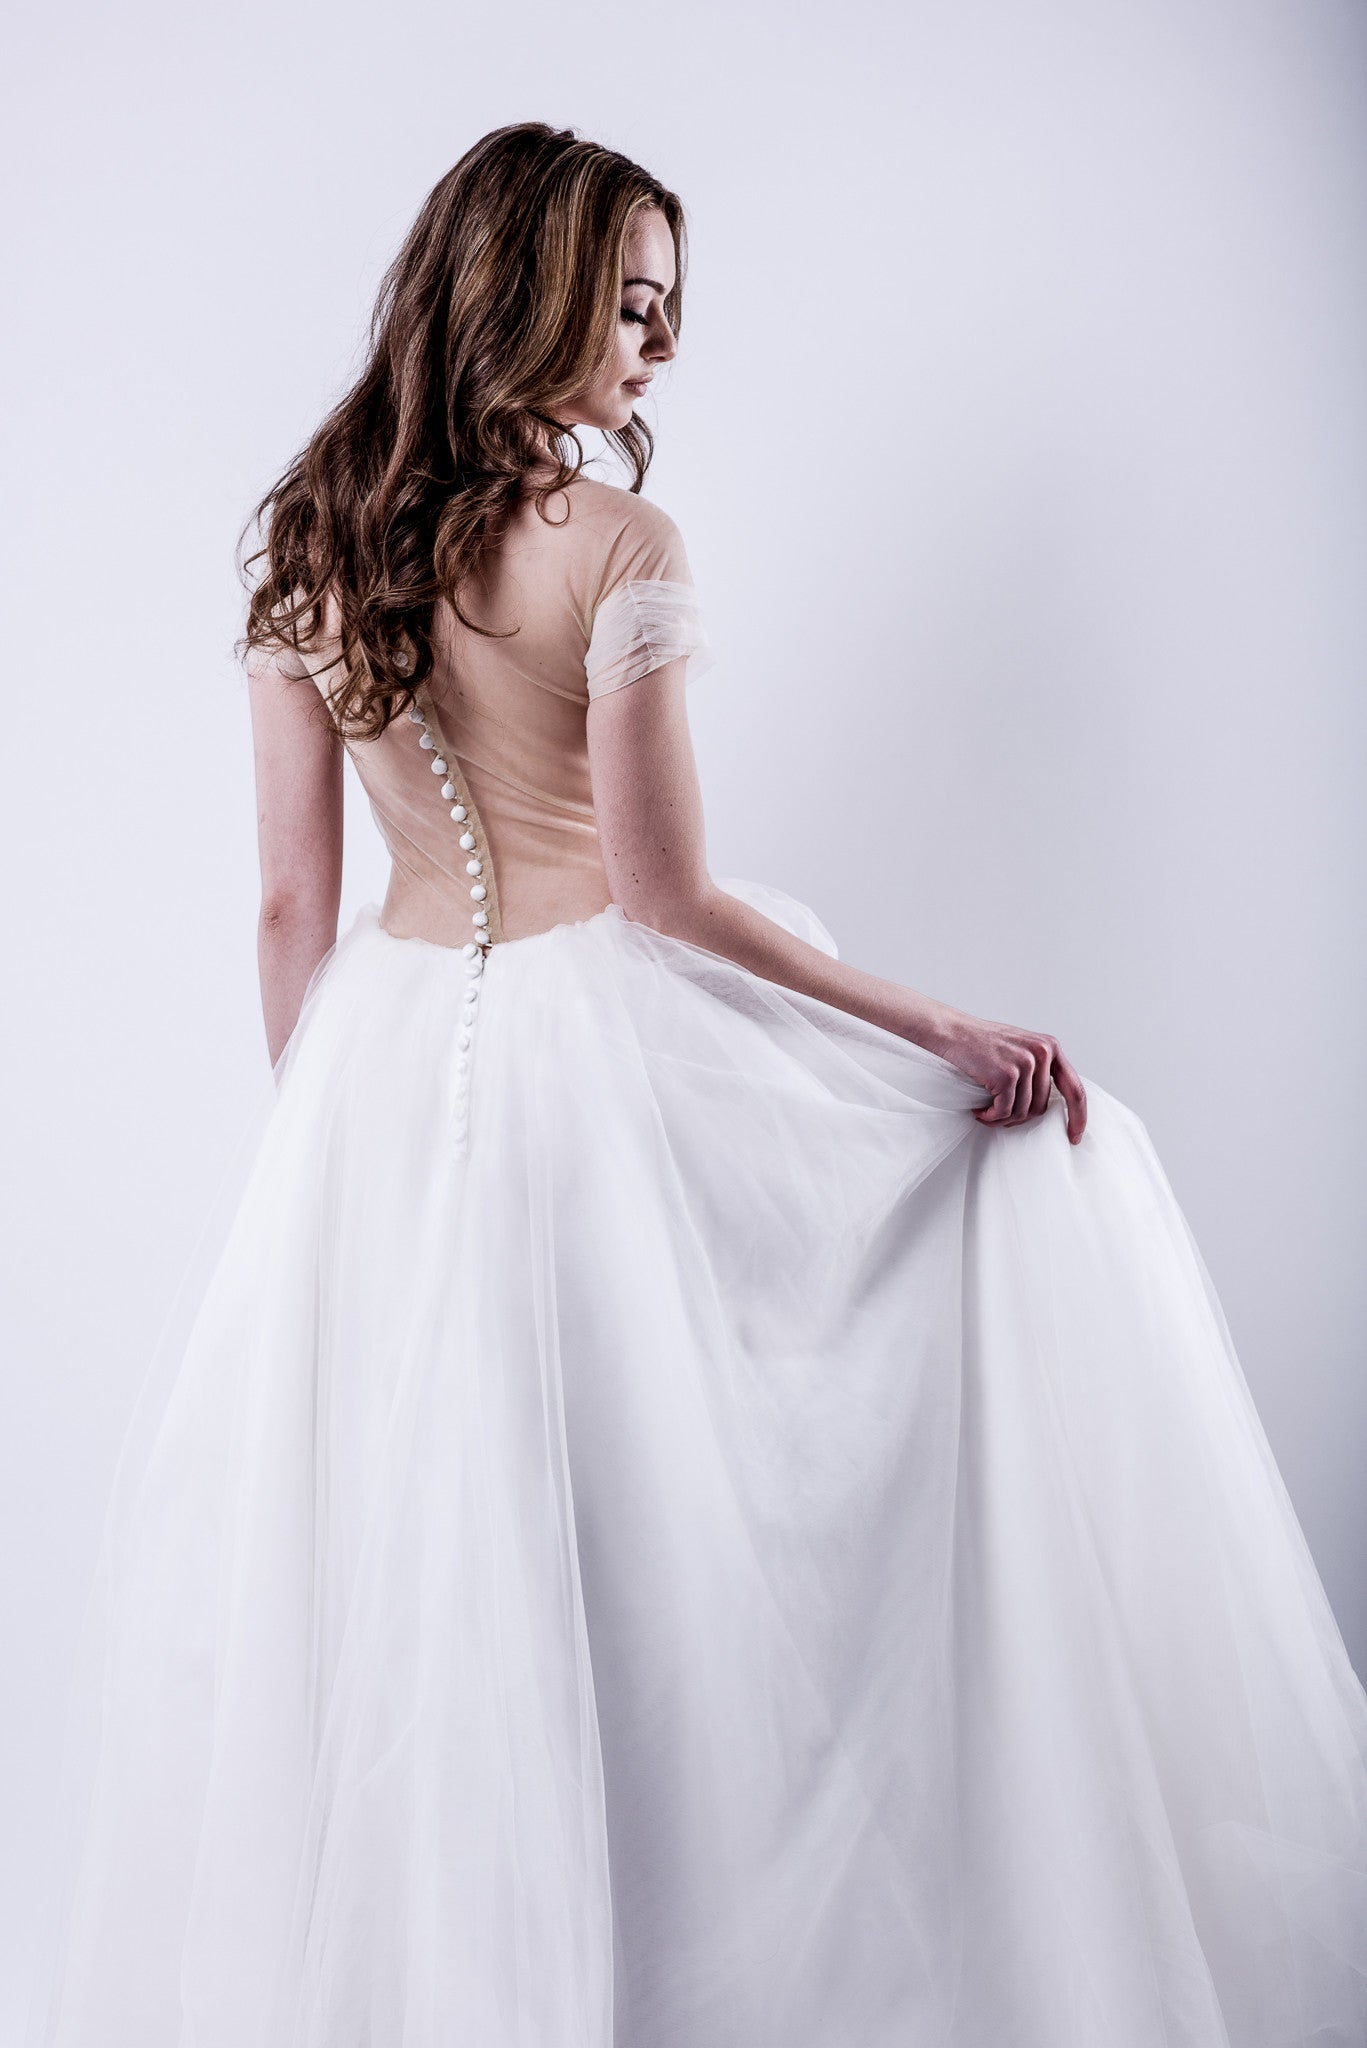 Tulle Ball Gown Wedding Dress (#Kennadie) - Dream Dresses by P.M.N  - 3